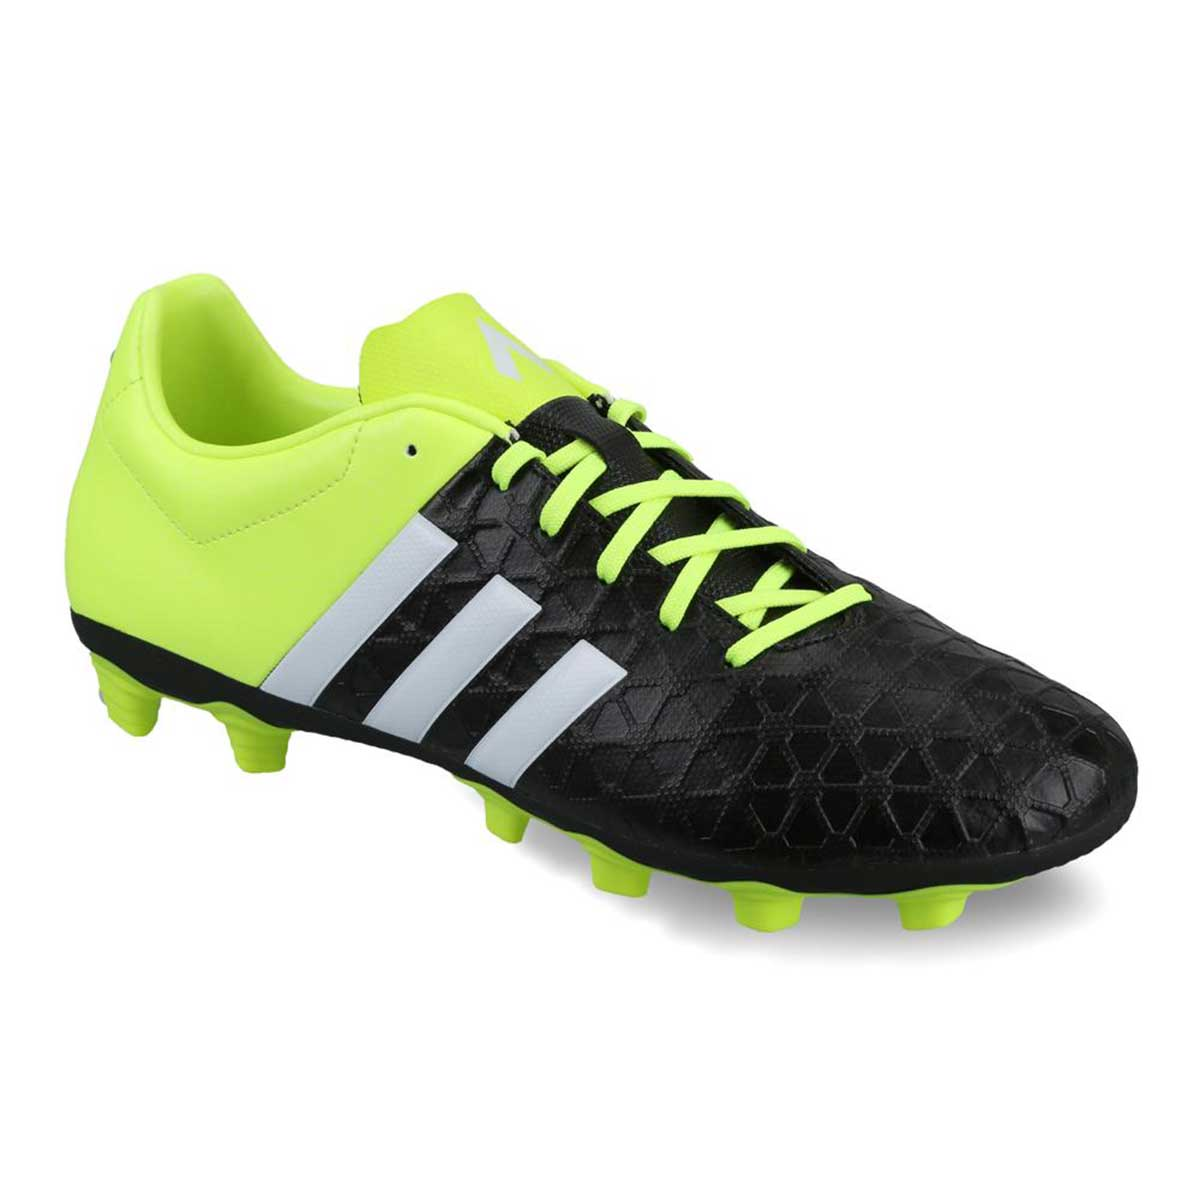 Buy Adidas ACE 15.4 FXG Football Shoes Online India| Soccer Shoes